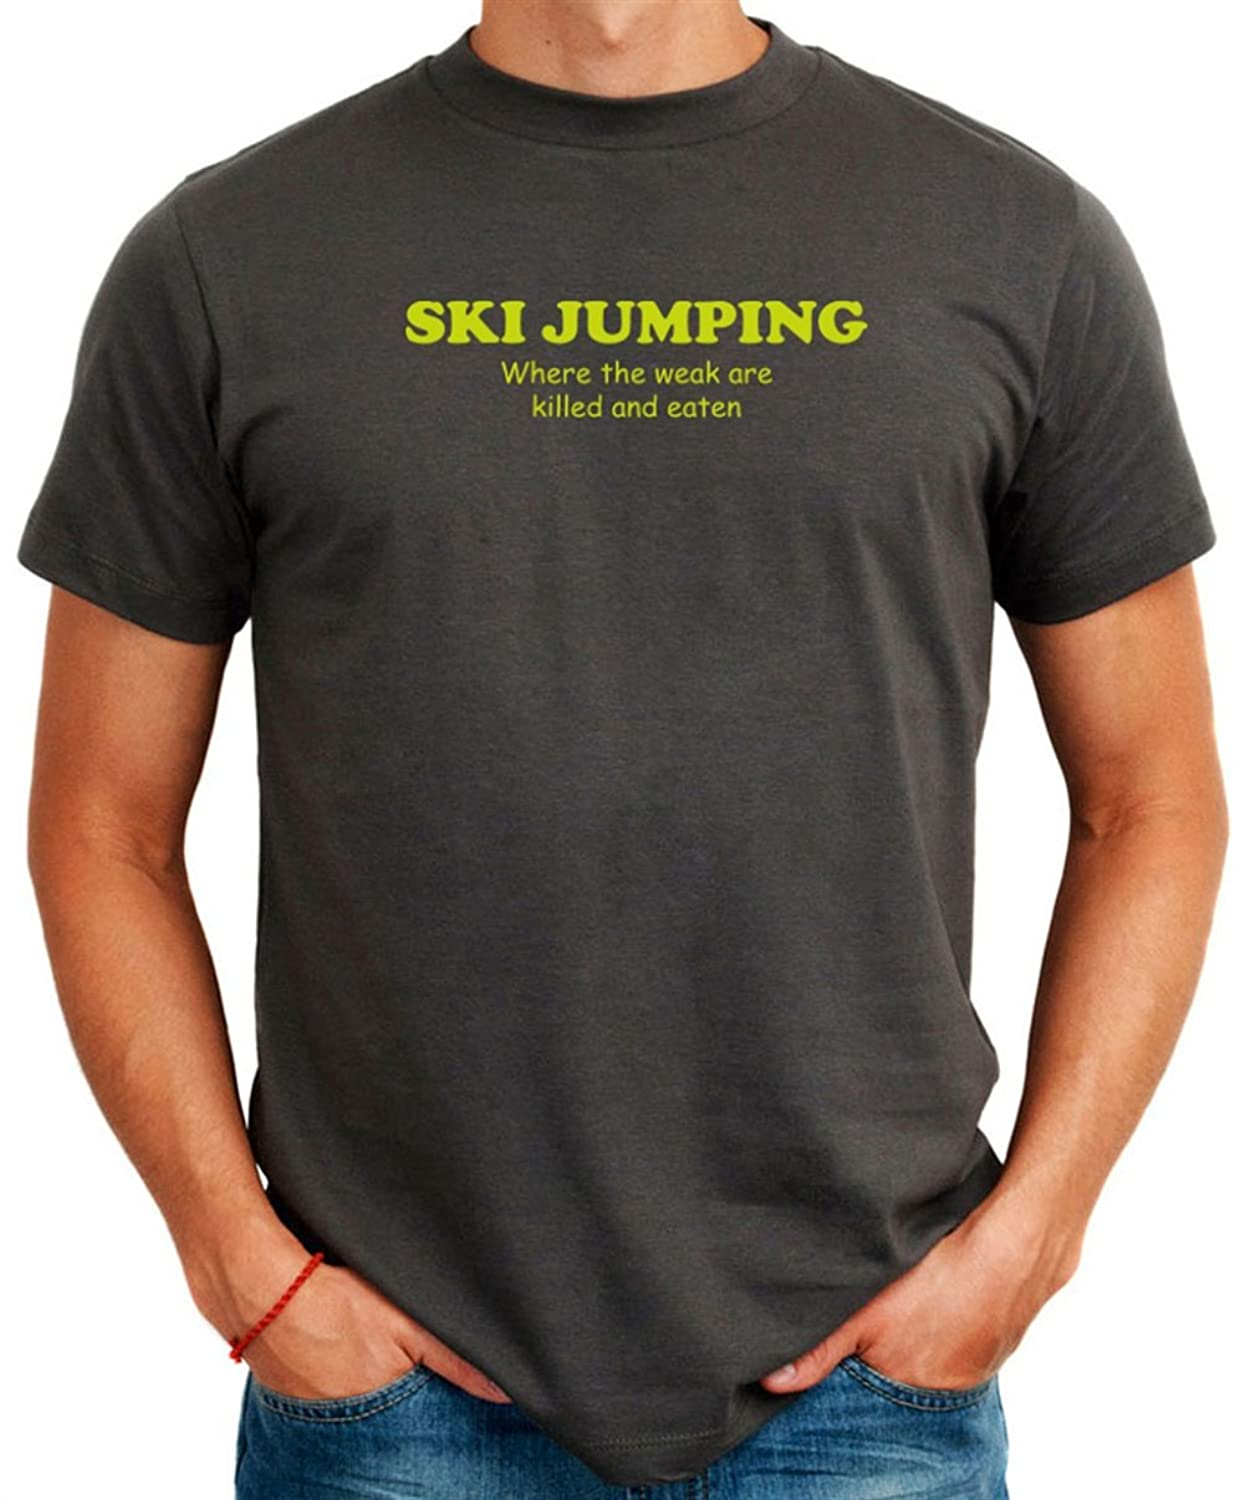 Ski Jumping WHERE THE WEAK ARE KILLED AND EATEN T-Shirt